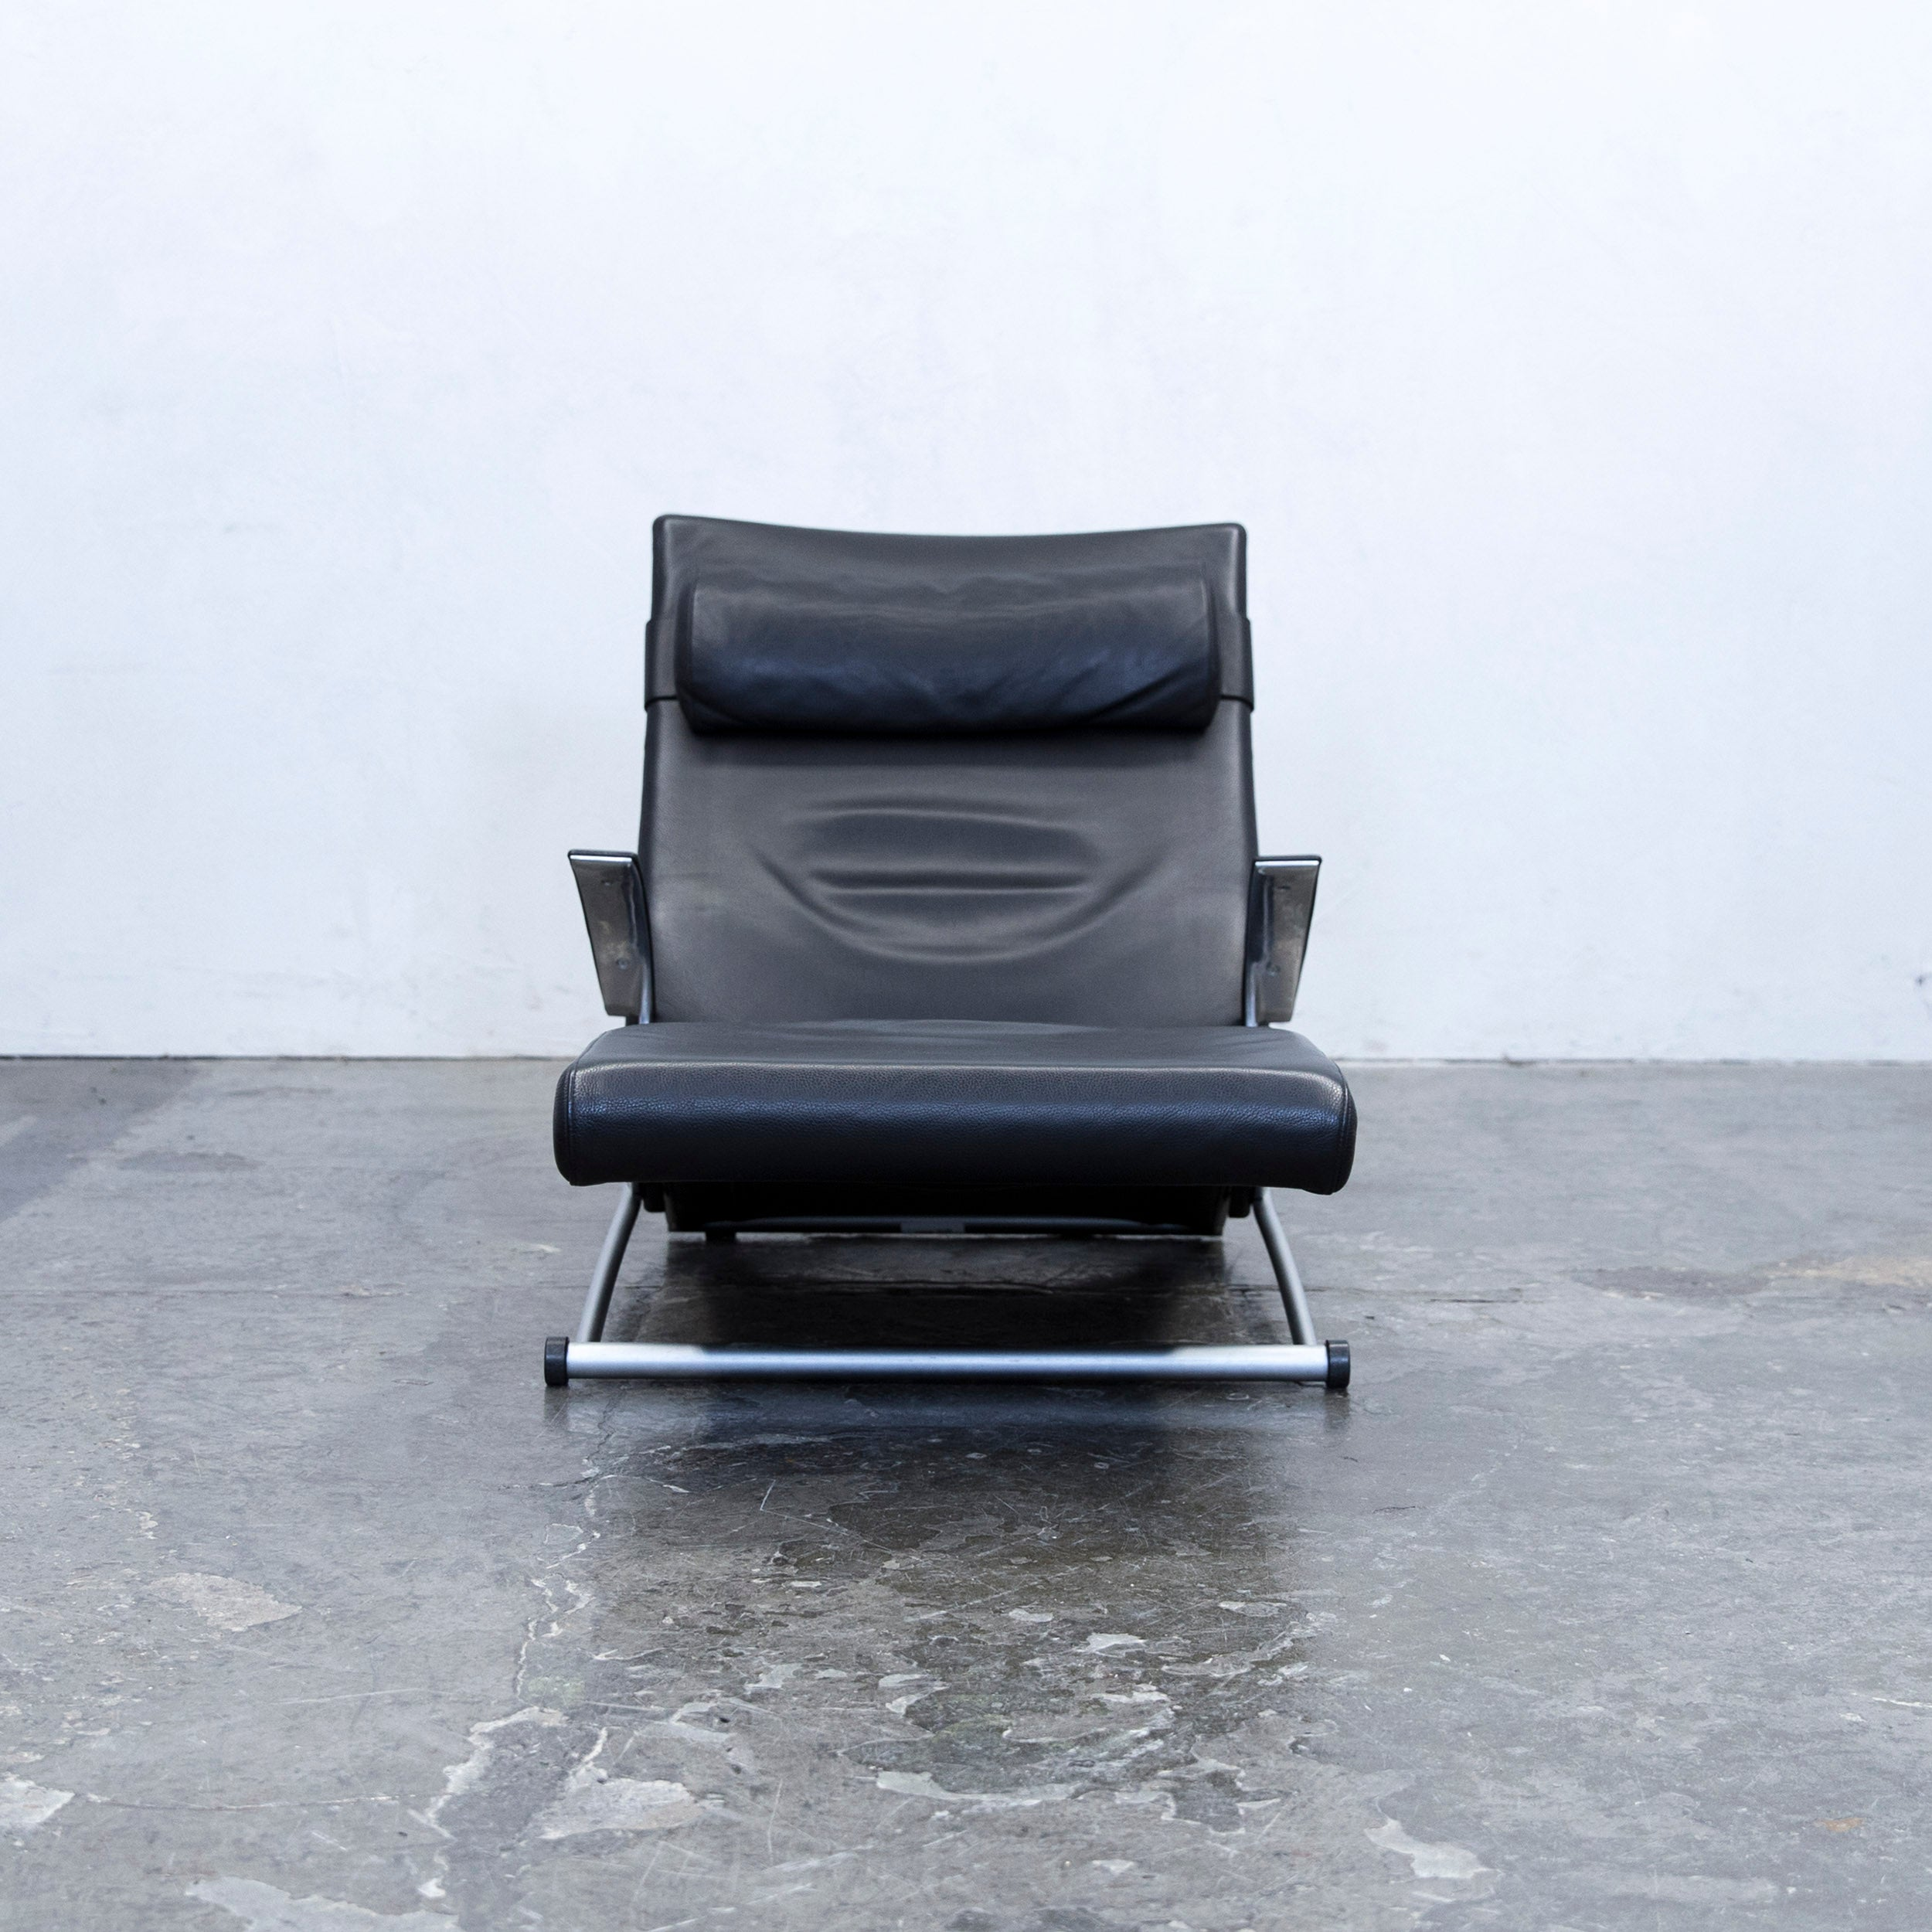 Sessel Cassin Interprofil Joachim Nees Designer Chair Leather Black Function One Seat Relax